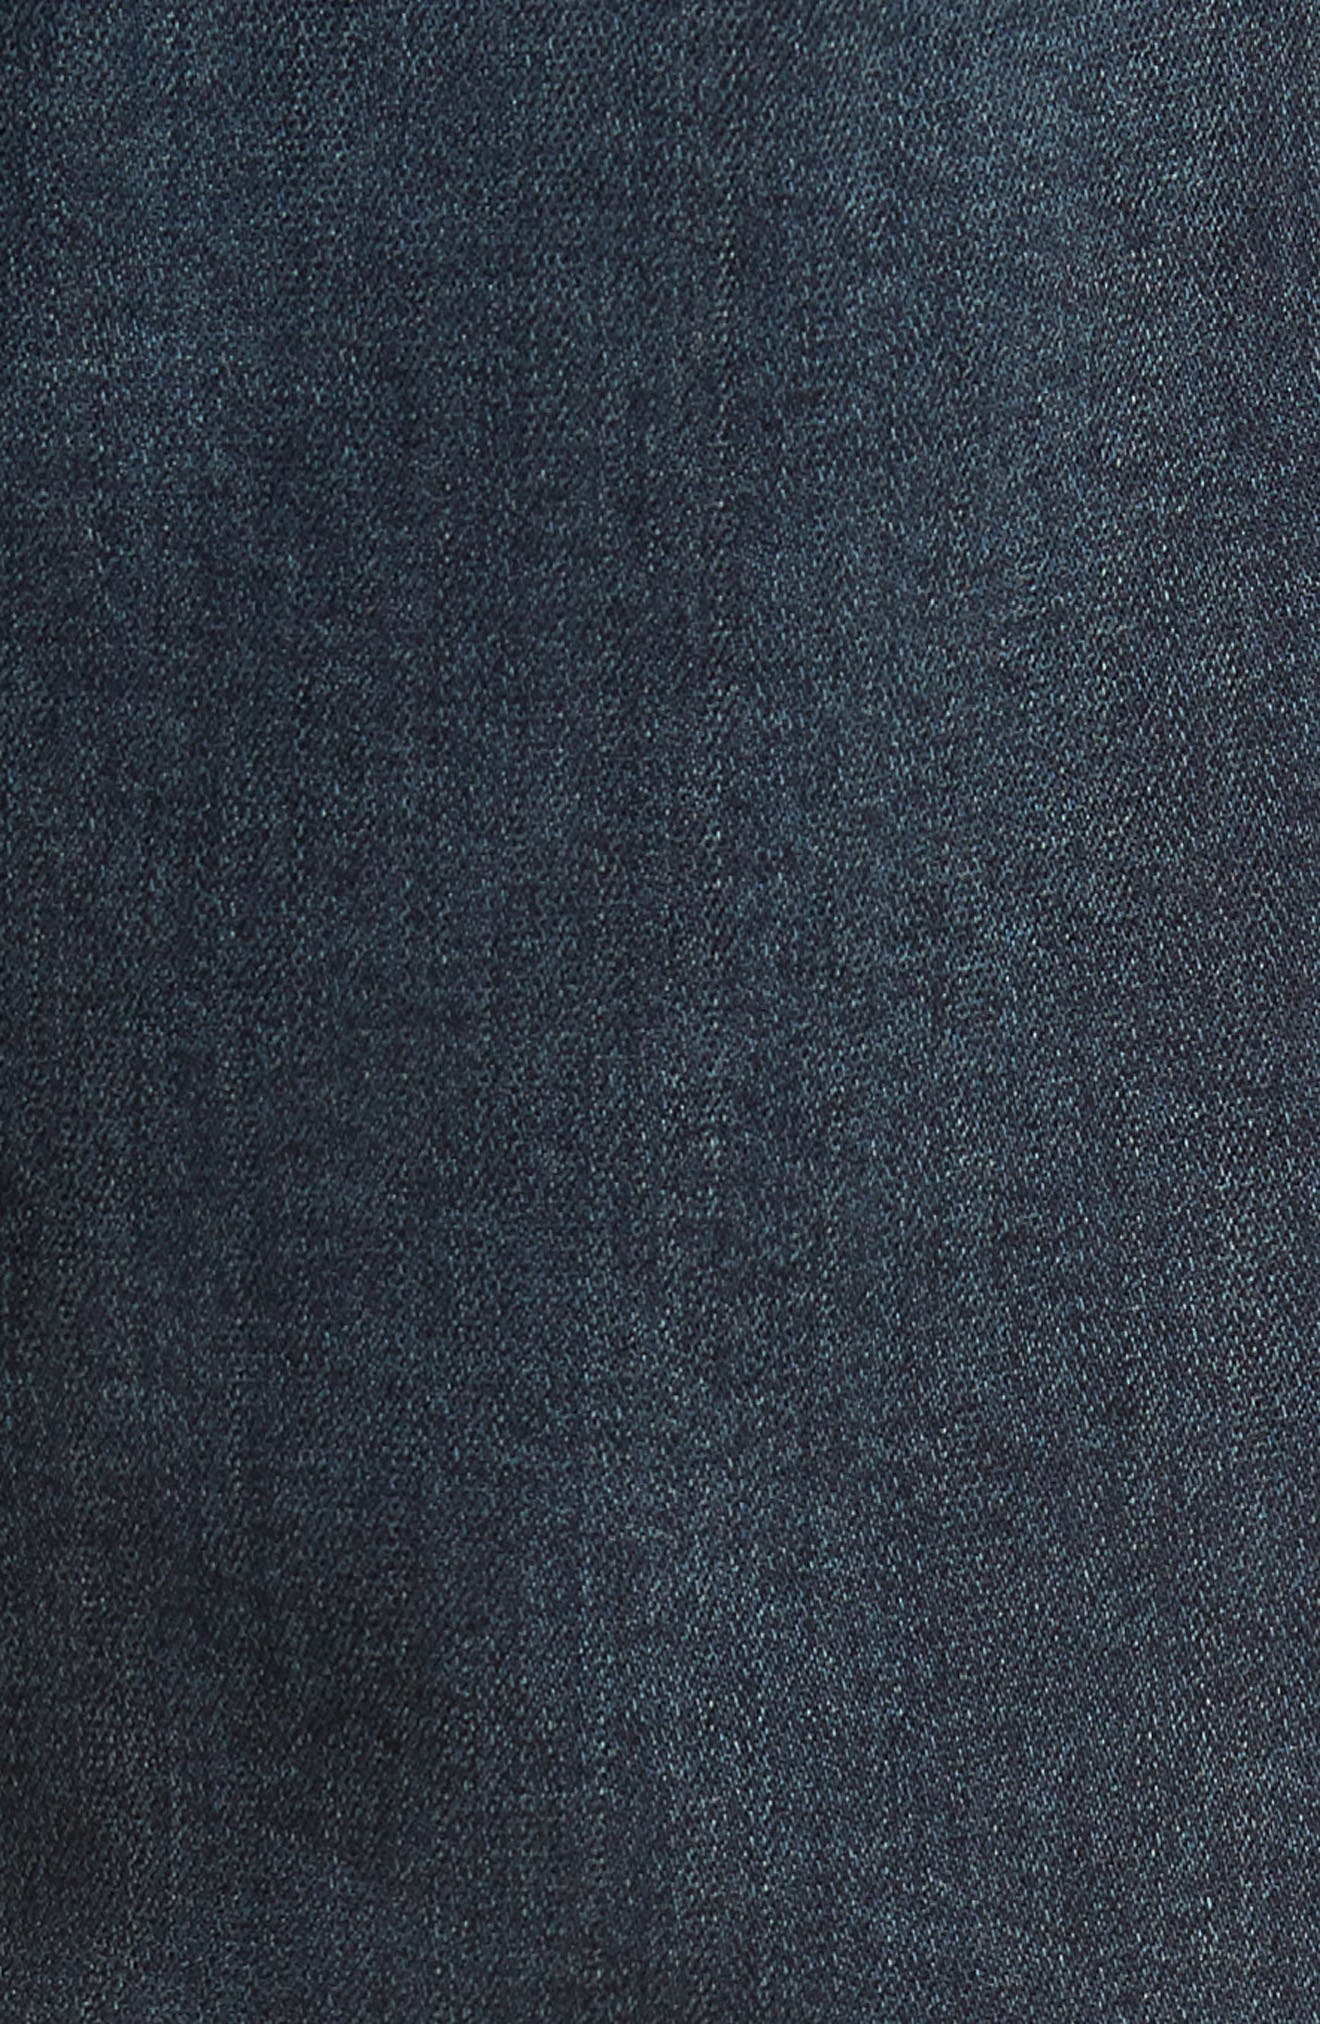 Byron Slim Straight Fit Jeans,                             Alternate thumbnail 5, color,                             Cruise